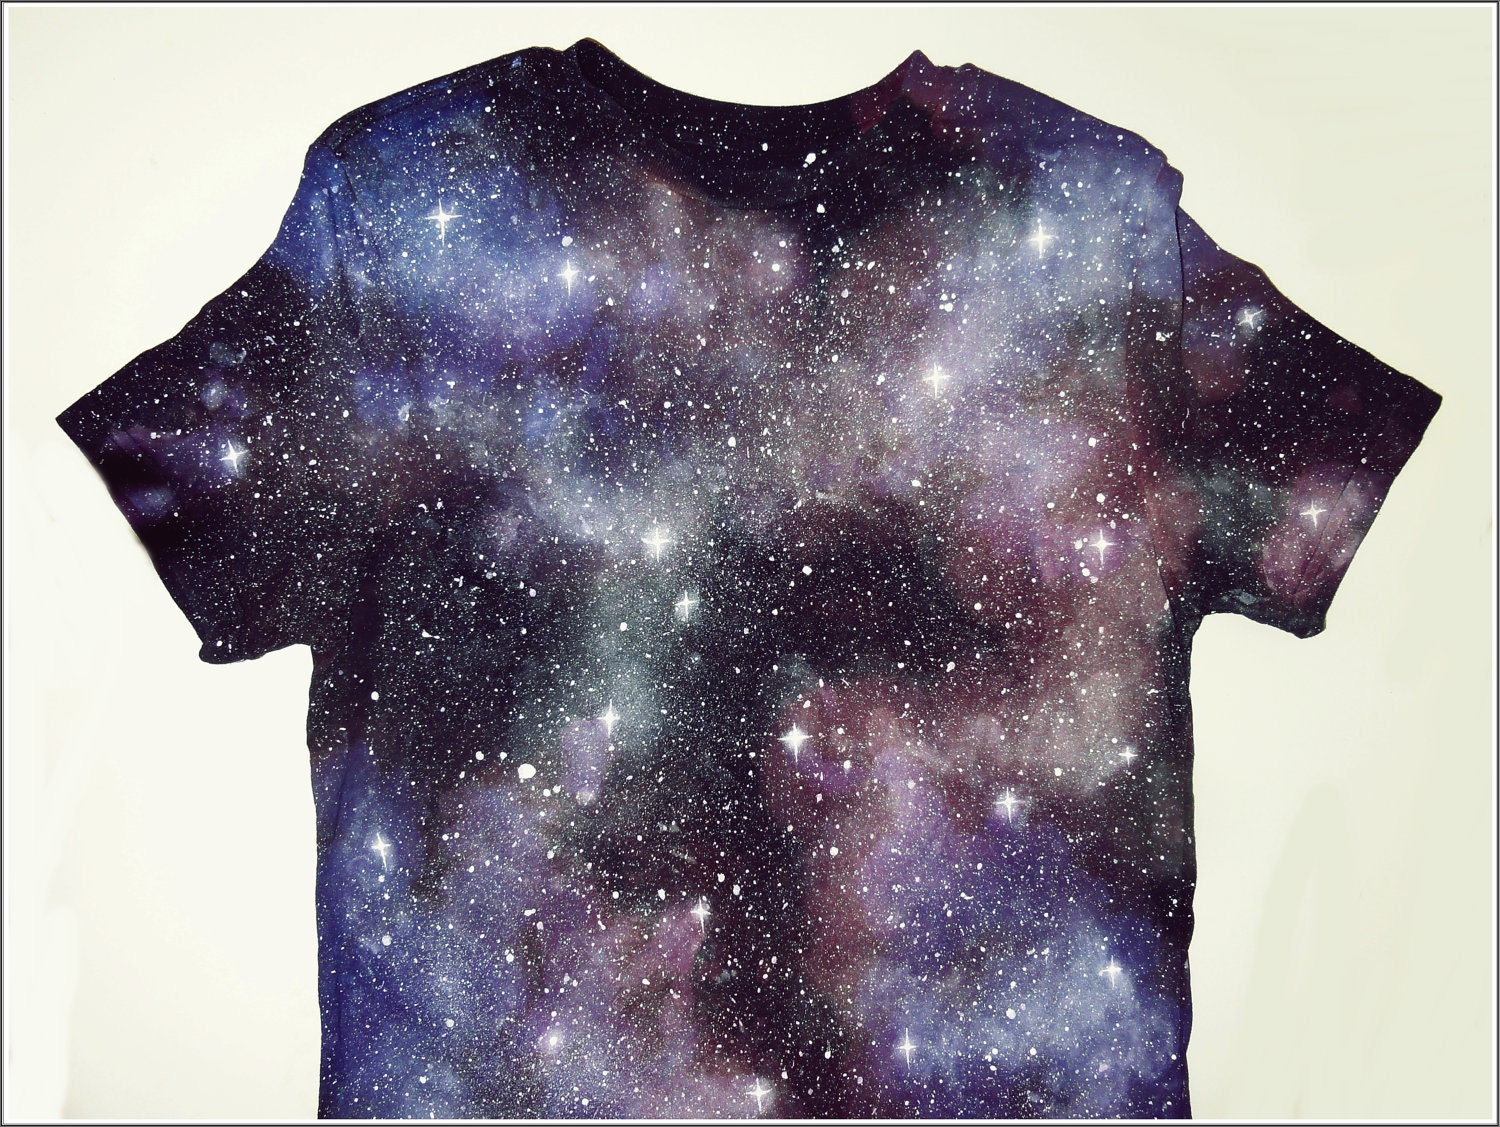 nebula haze in t shirt - photo #21